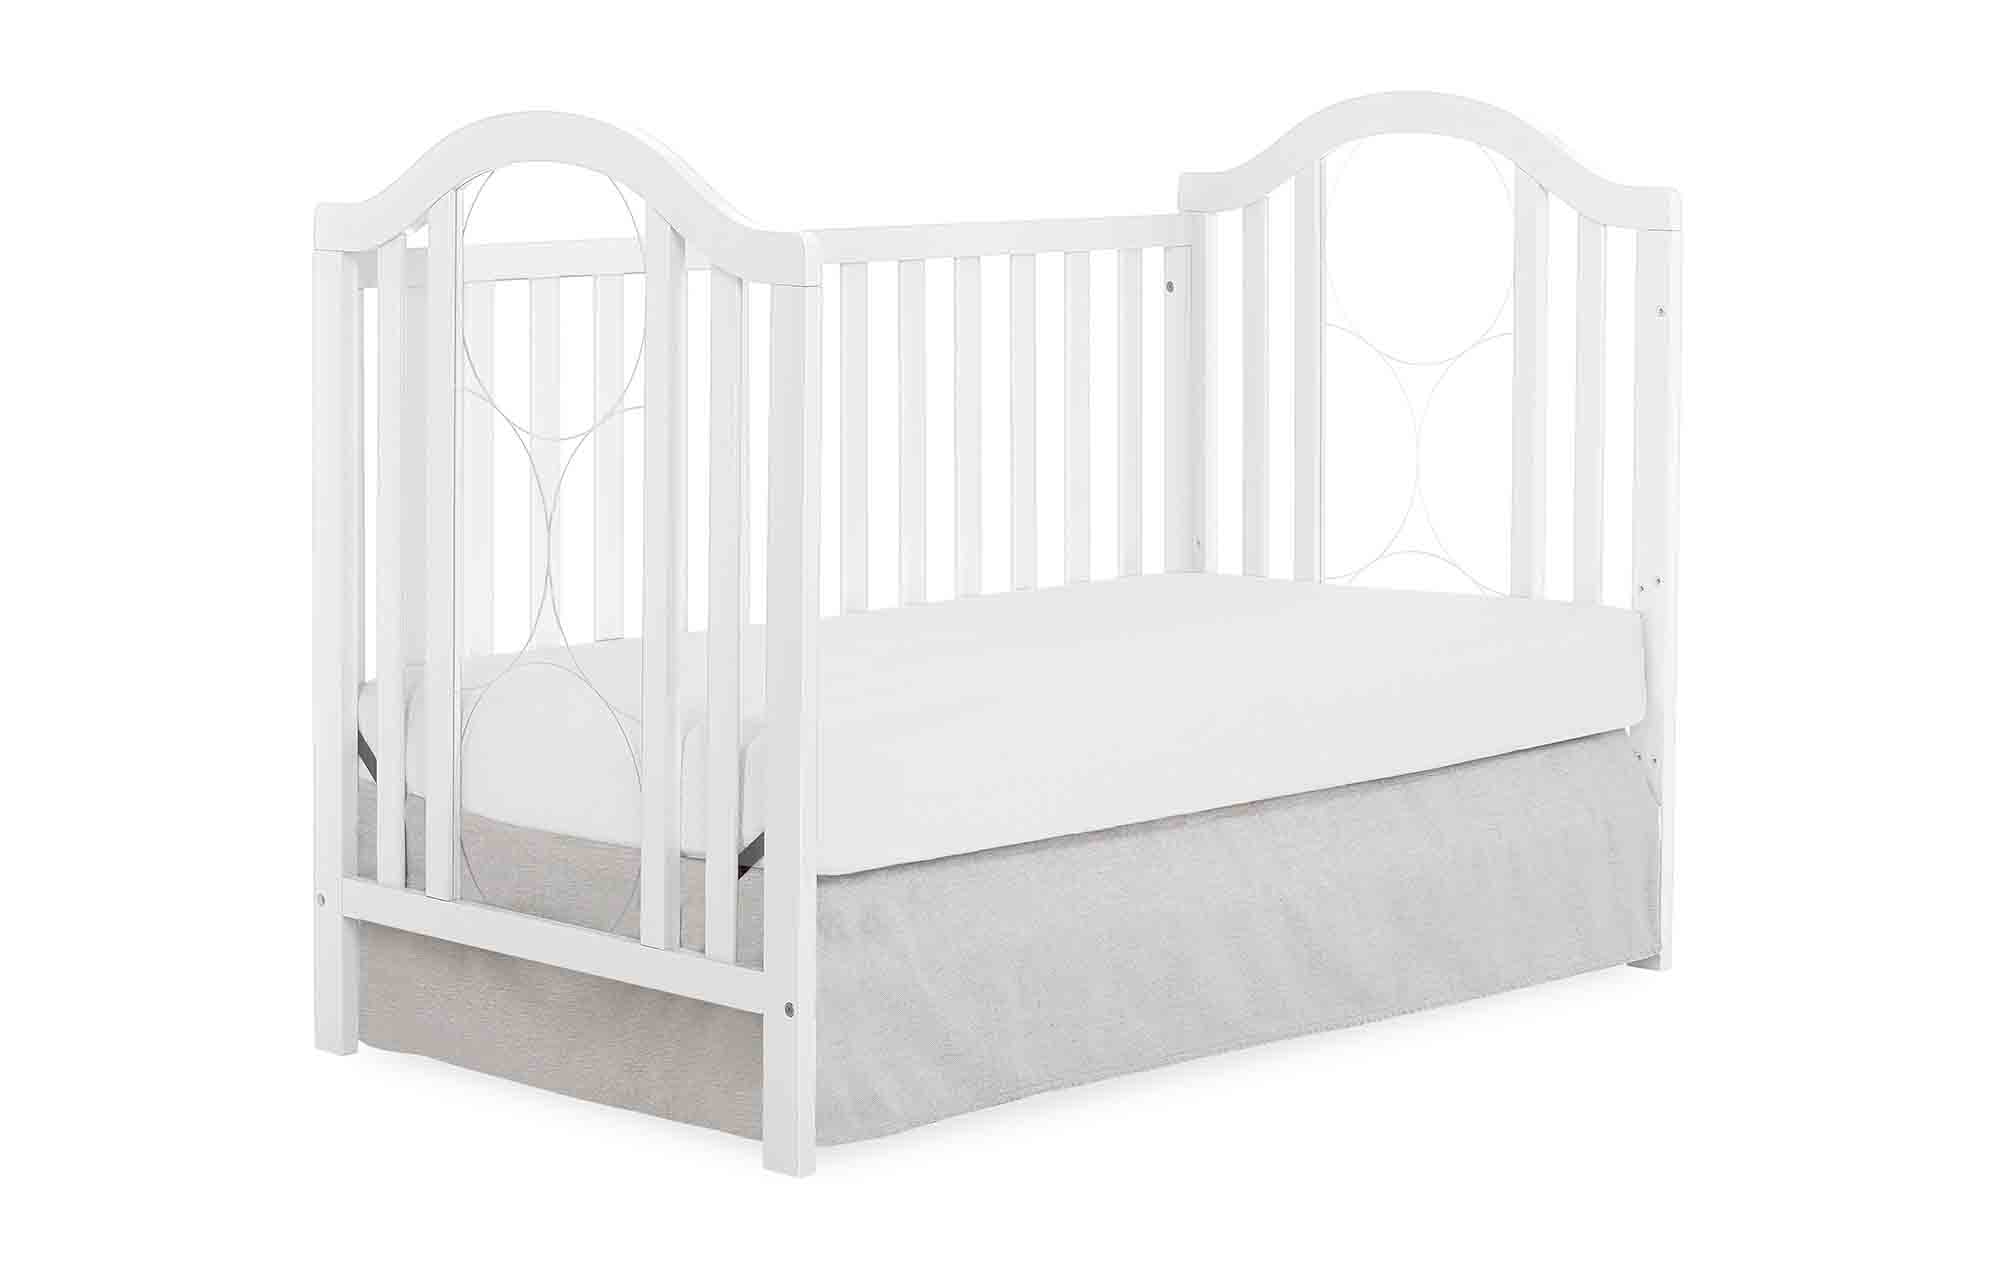 762-W Ariel Day Bed